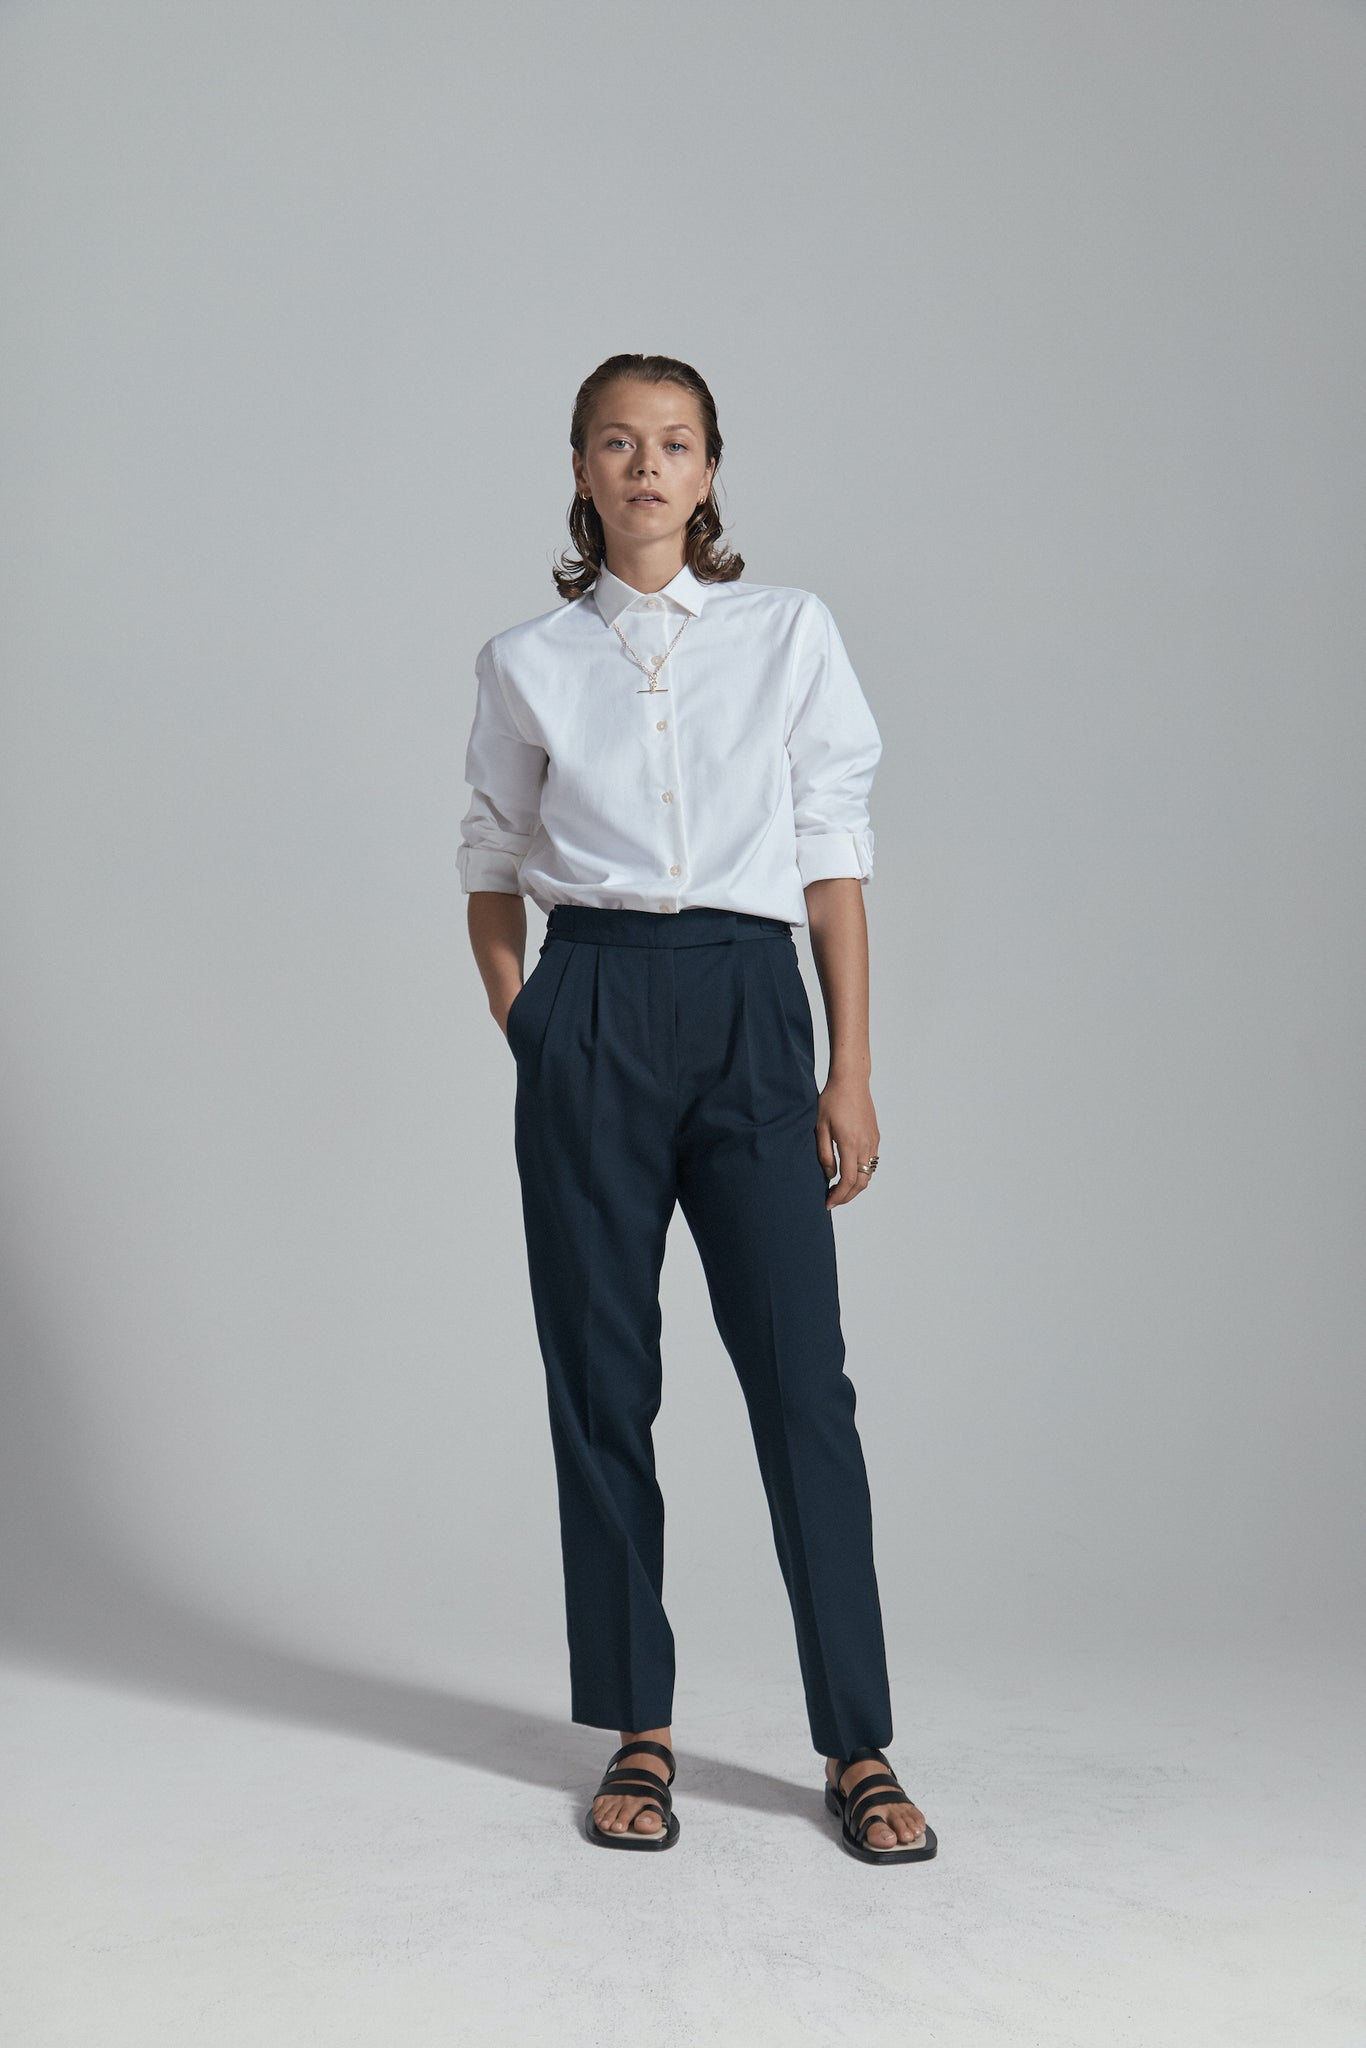 white shirt & navy trouser